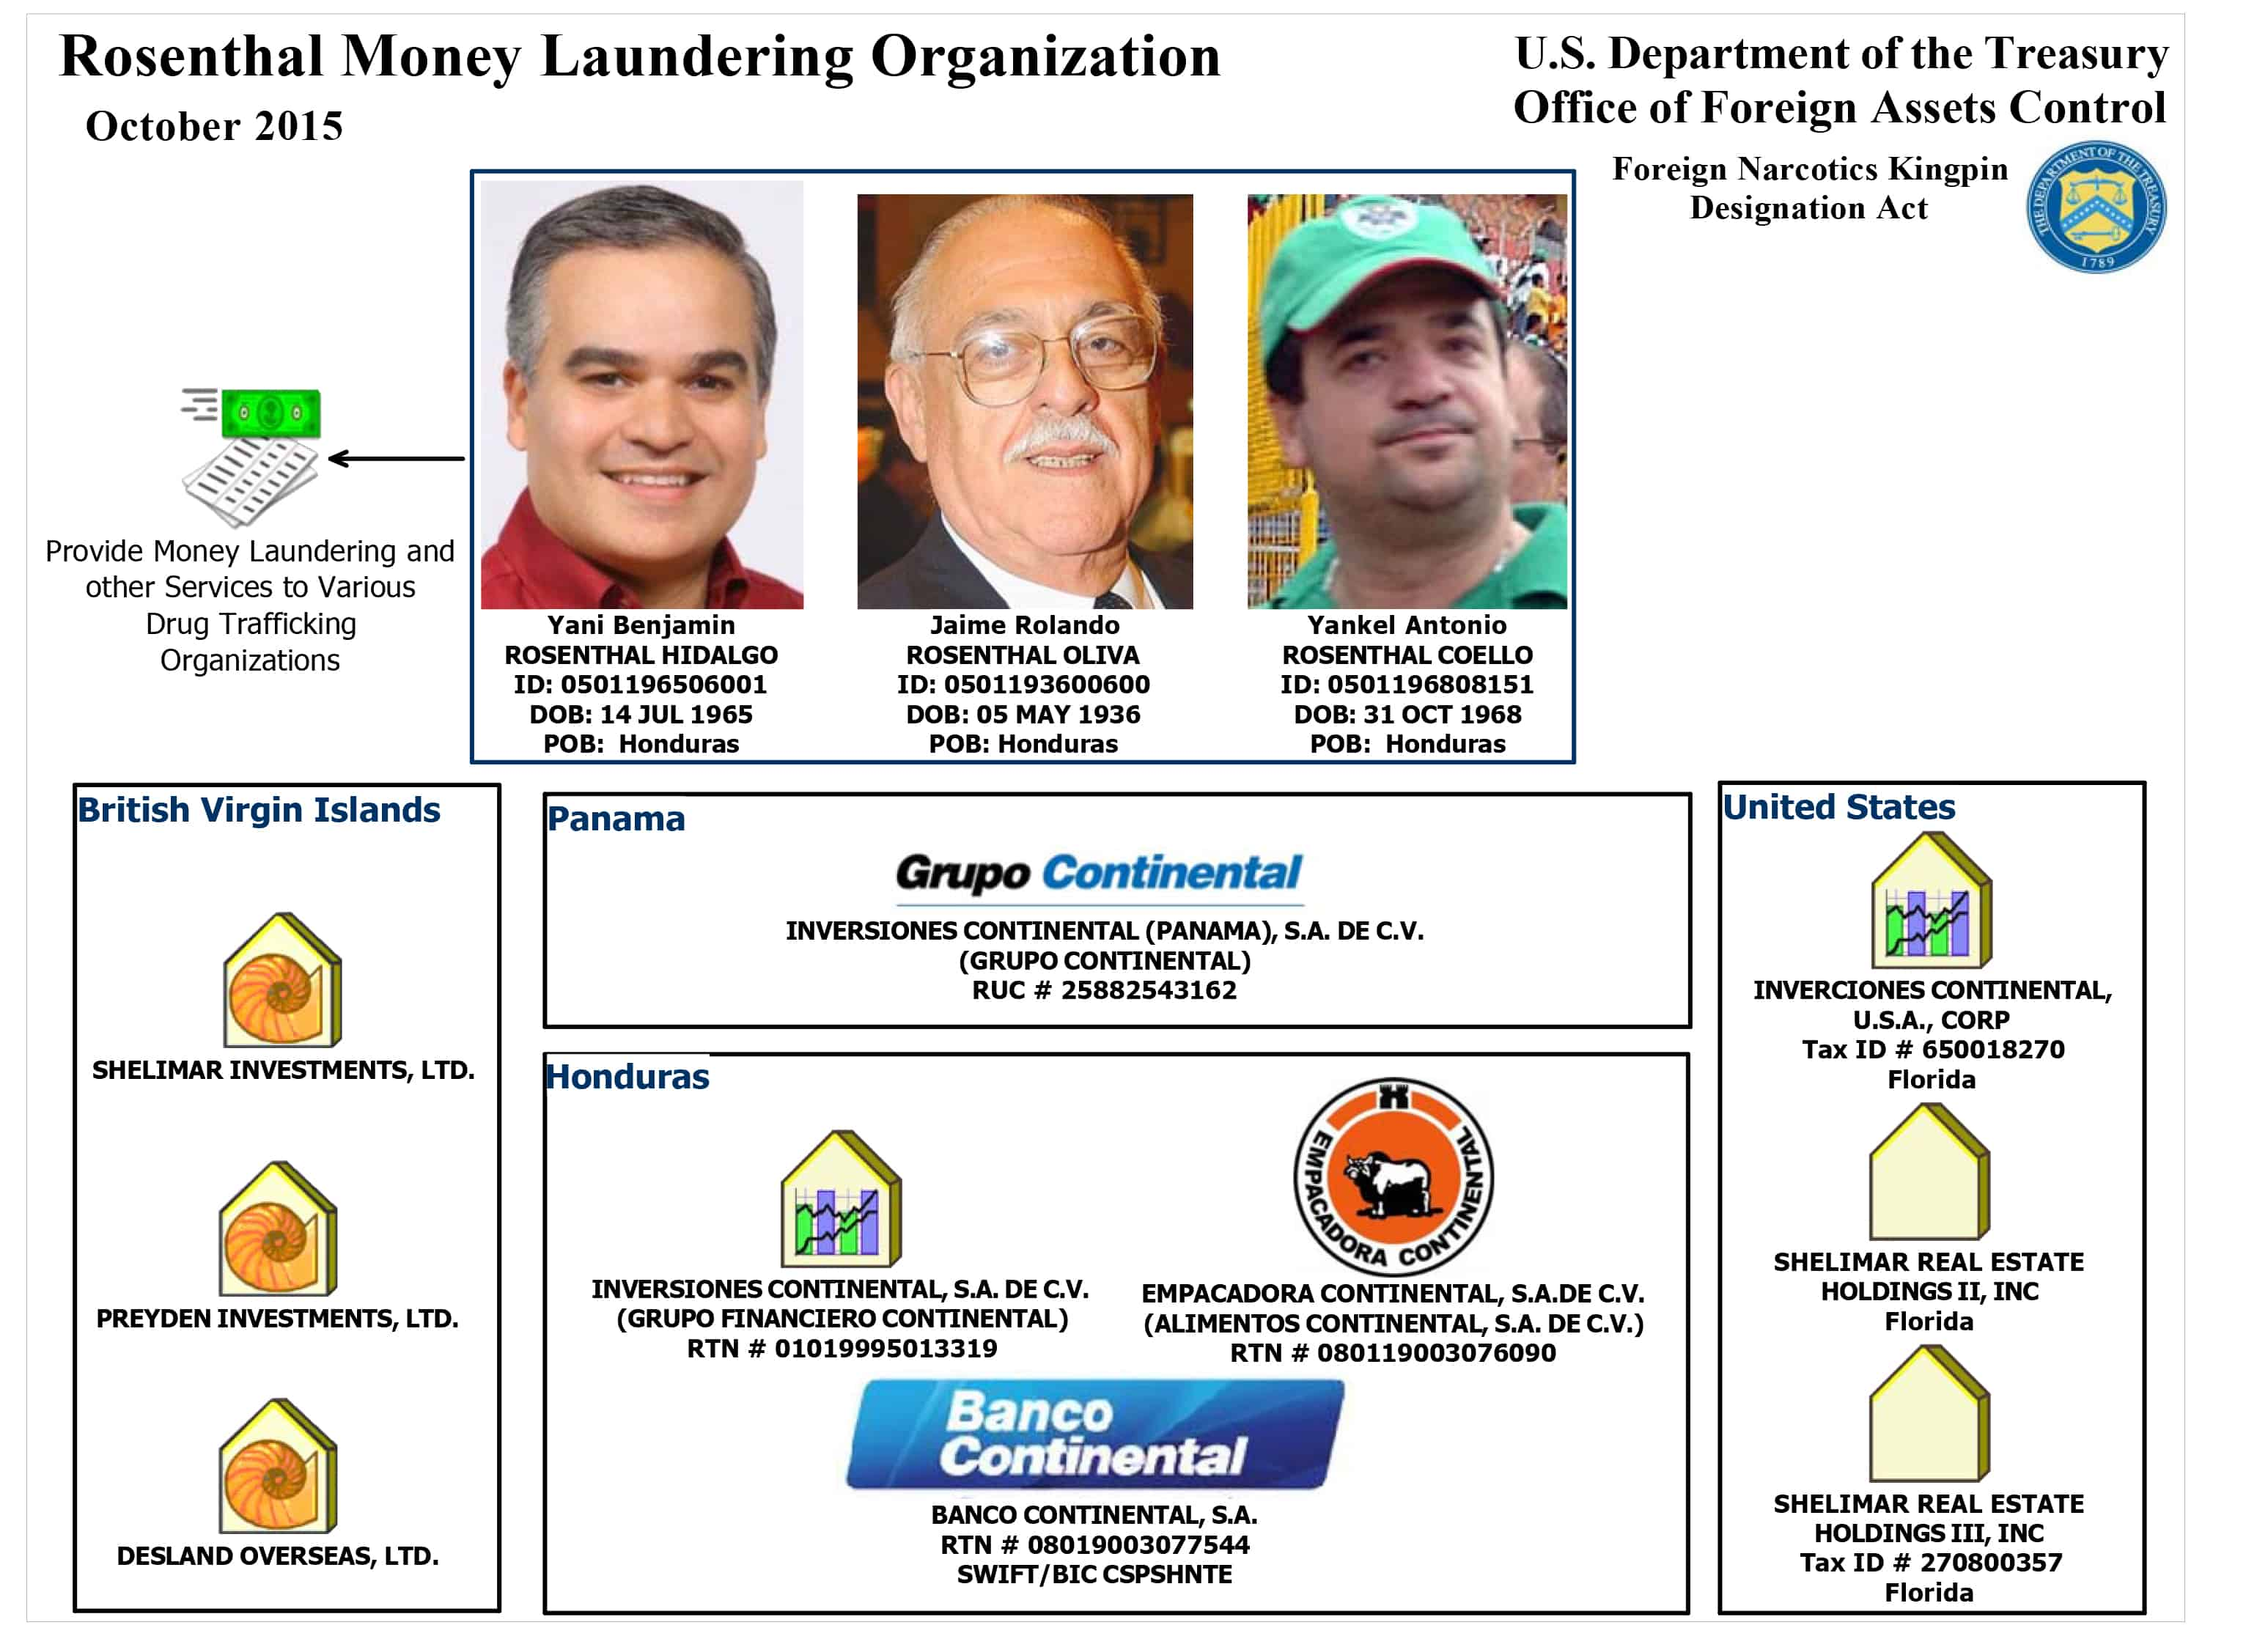 graphic of Rosenthal Money Laundering Organization